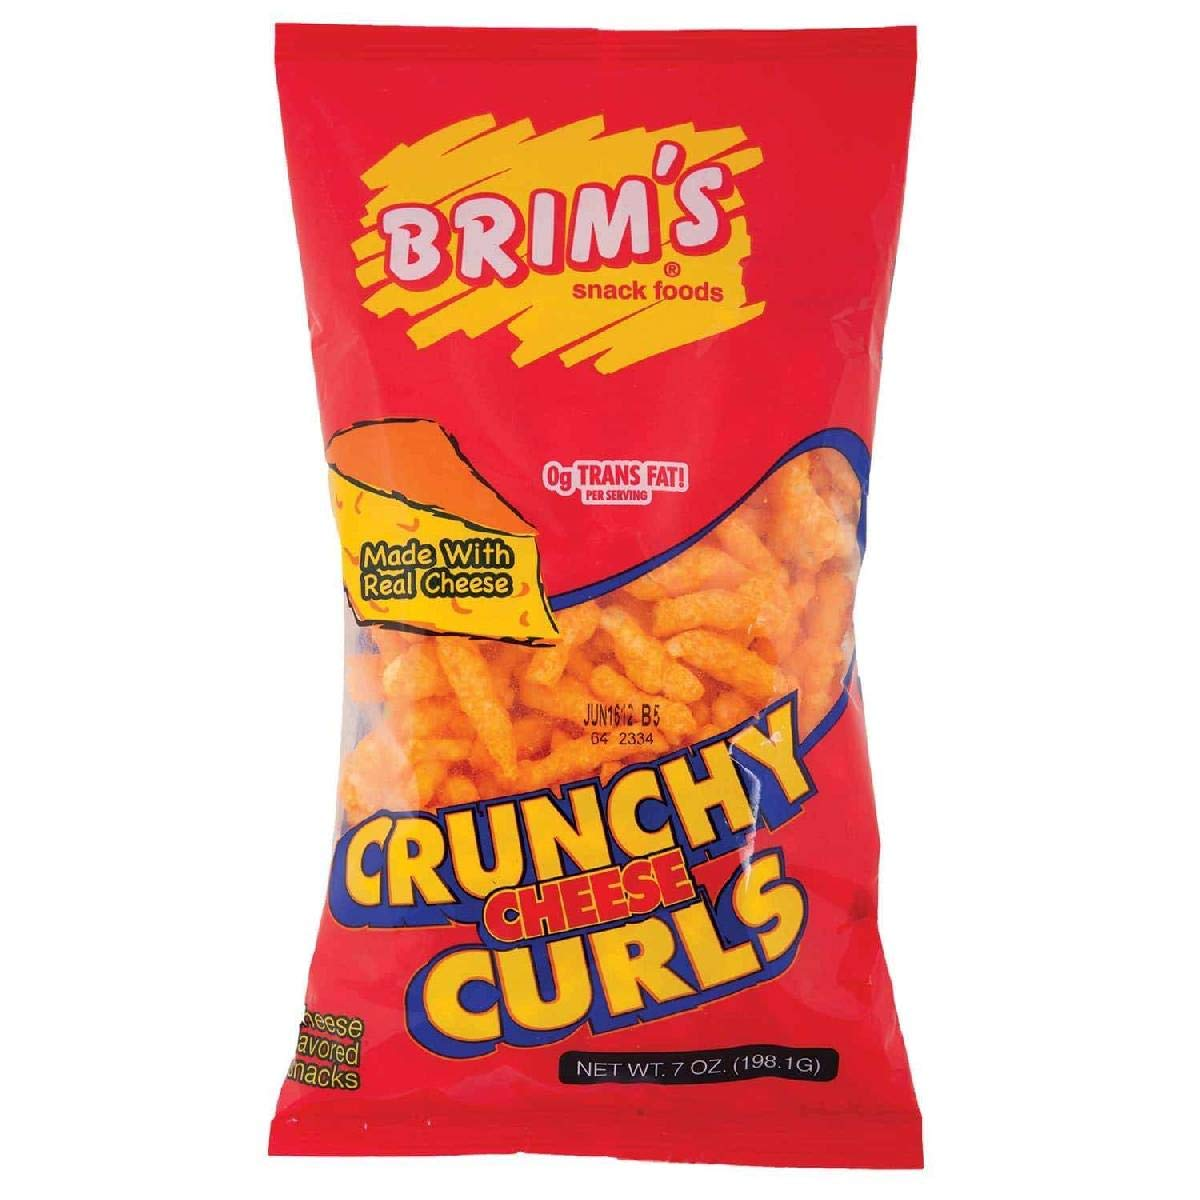 (Pack of 16) Brims Crunchy Cheese Curls Cheese Curls Cheddar Cheese, 7oz